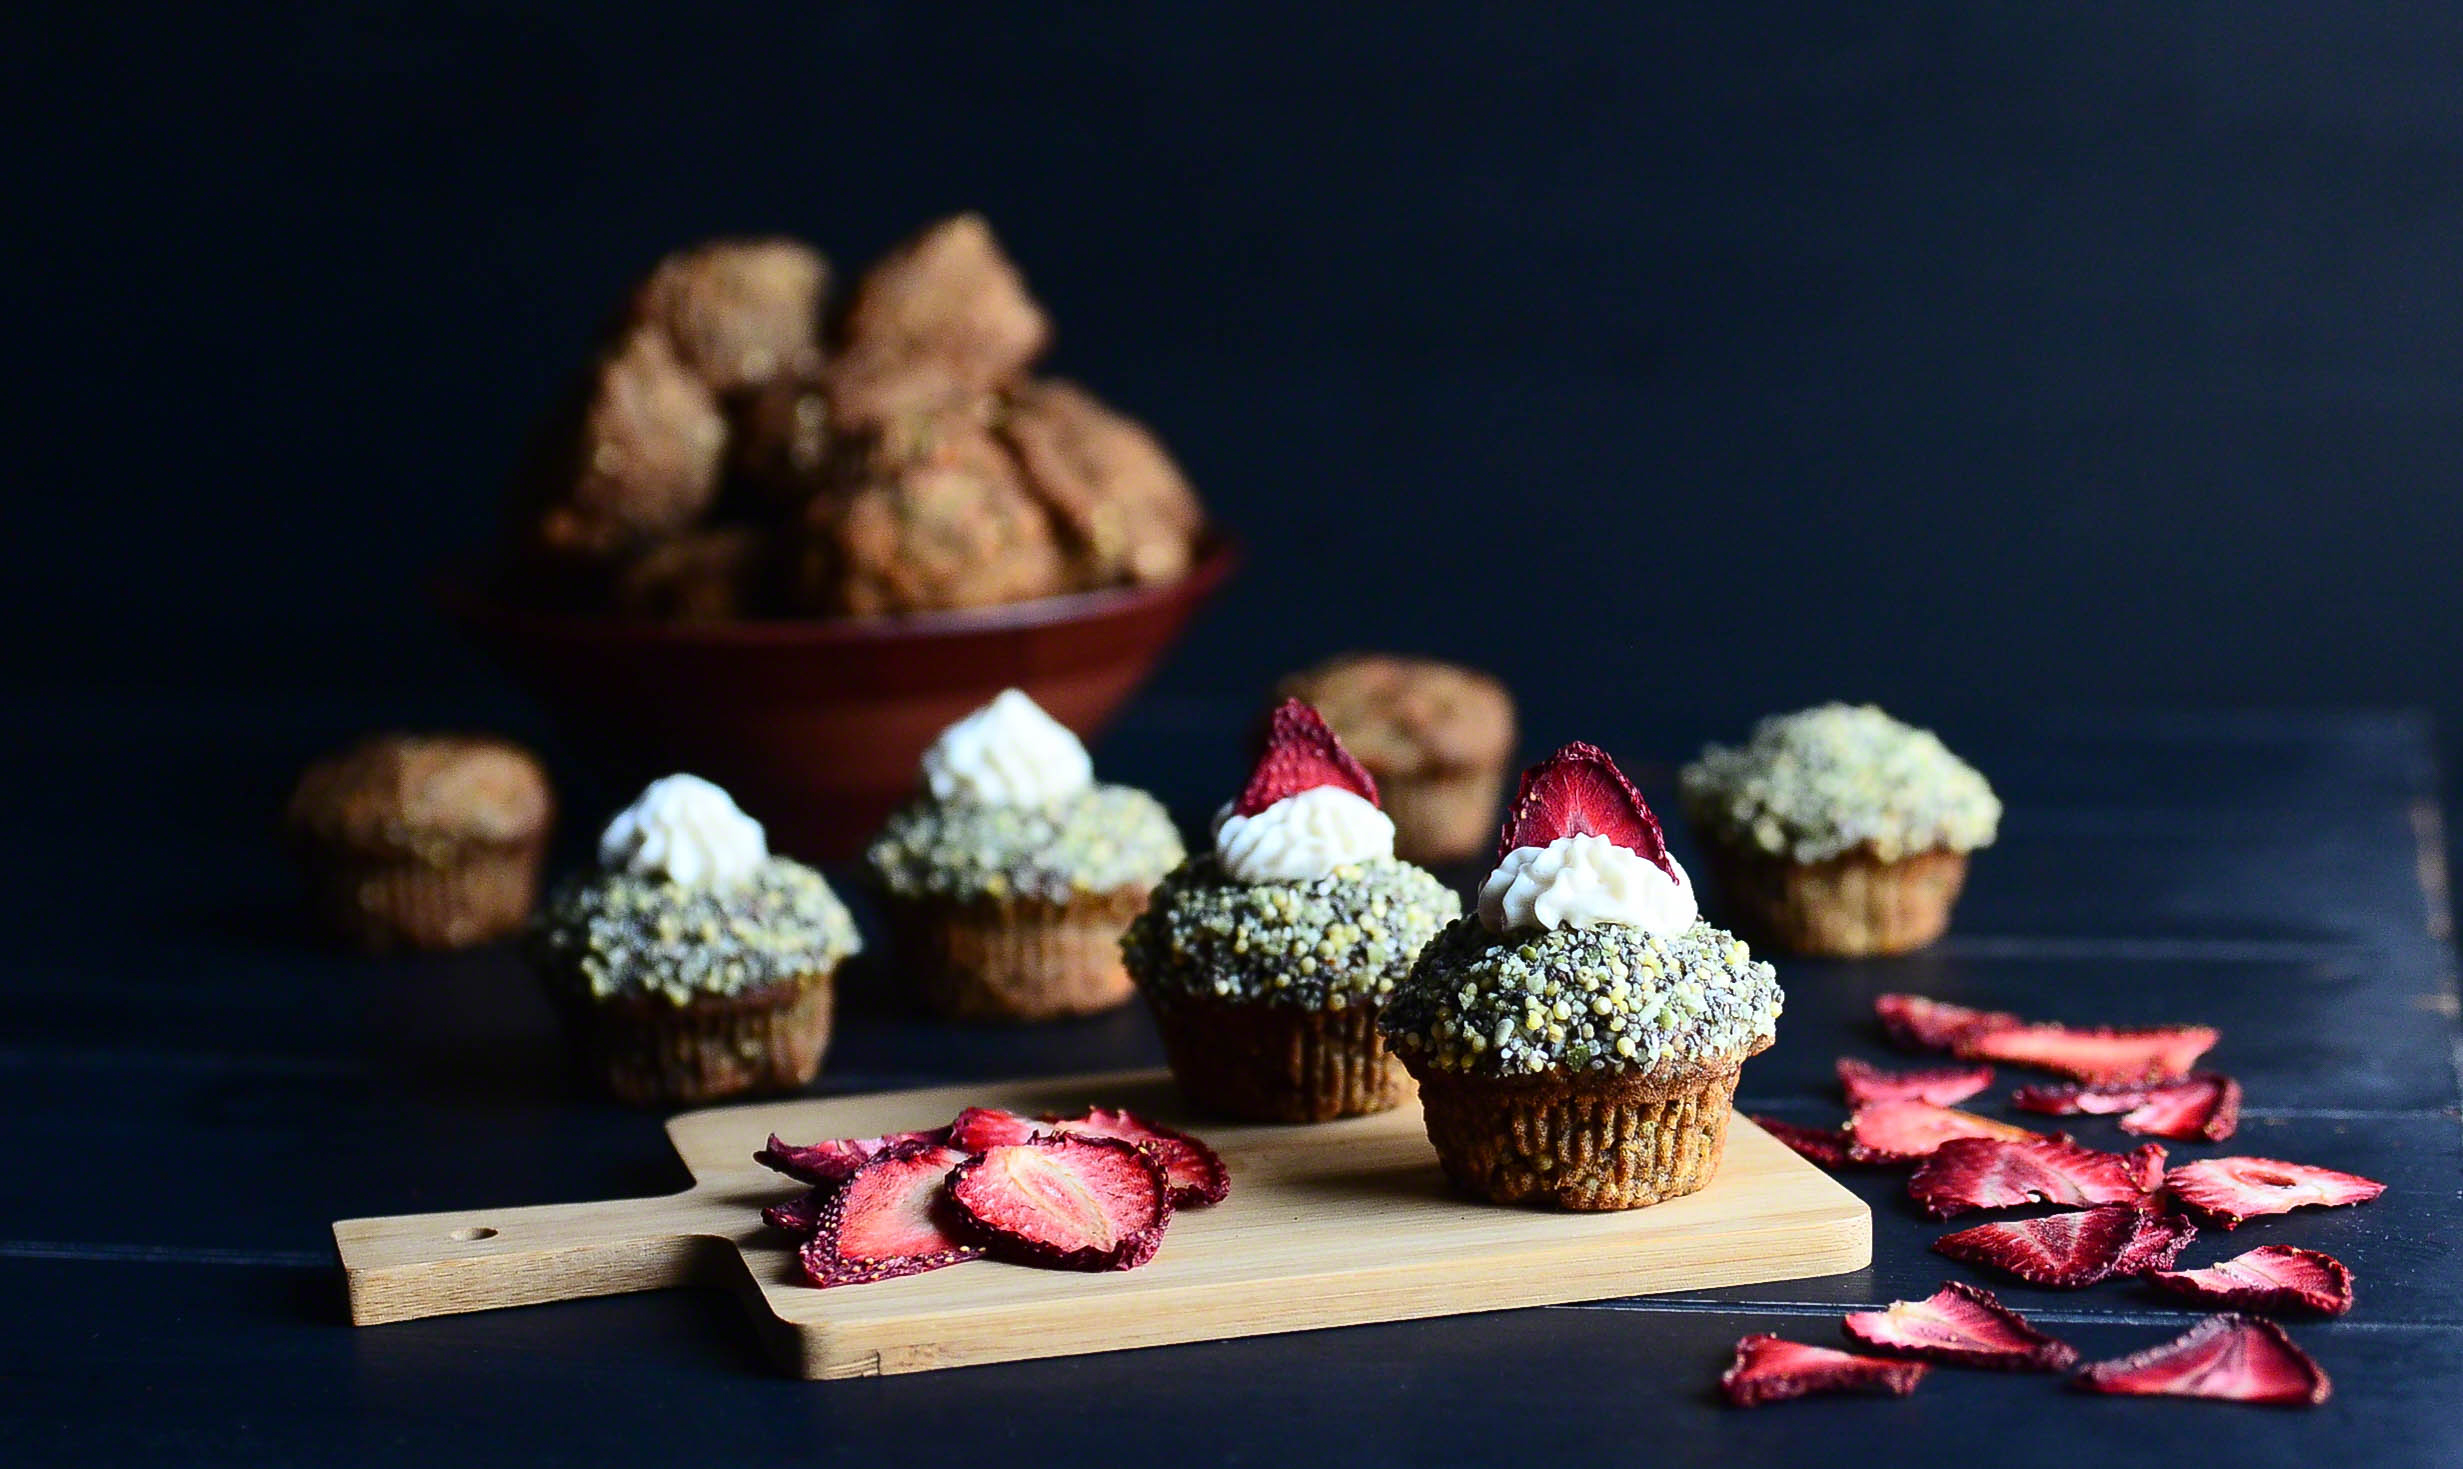 Three Seed Morning Muffins topped with Coconut Buttercream and Dehydrated Strawberries(Vegan + GF)